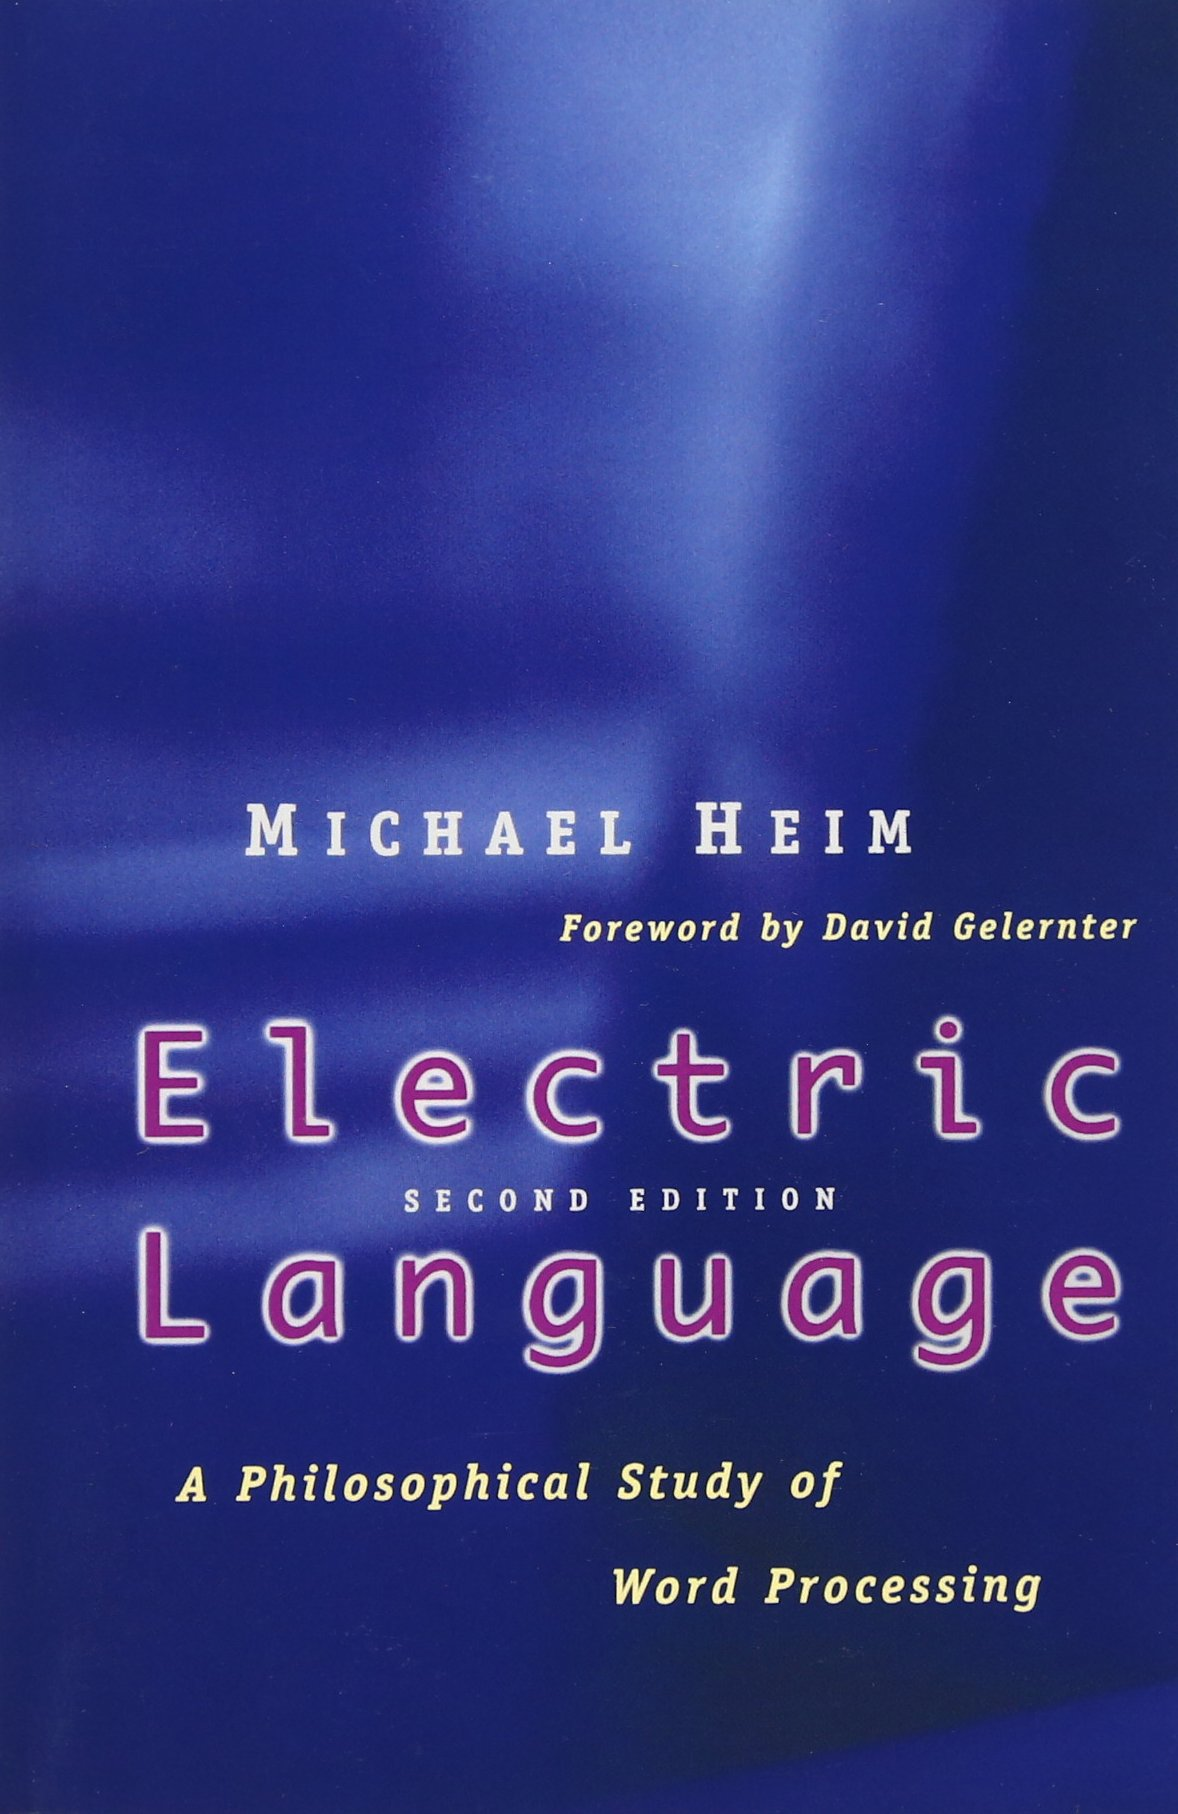 Electric Language: A Philosophical Study of Word Processing, Second Edition